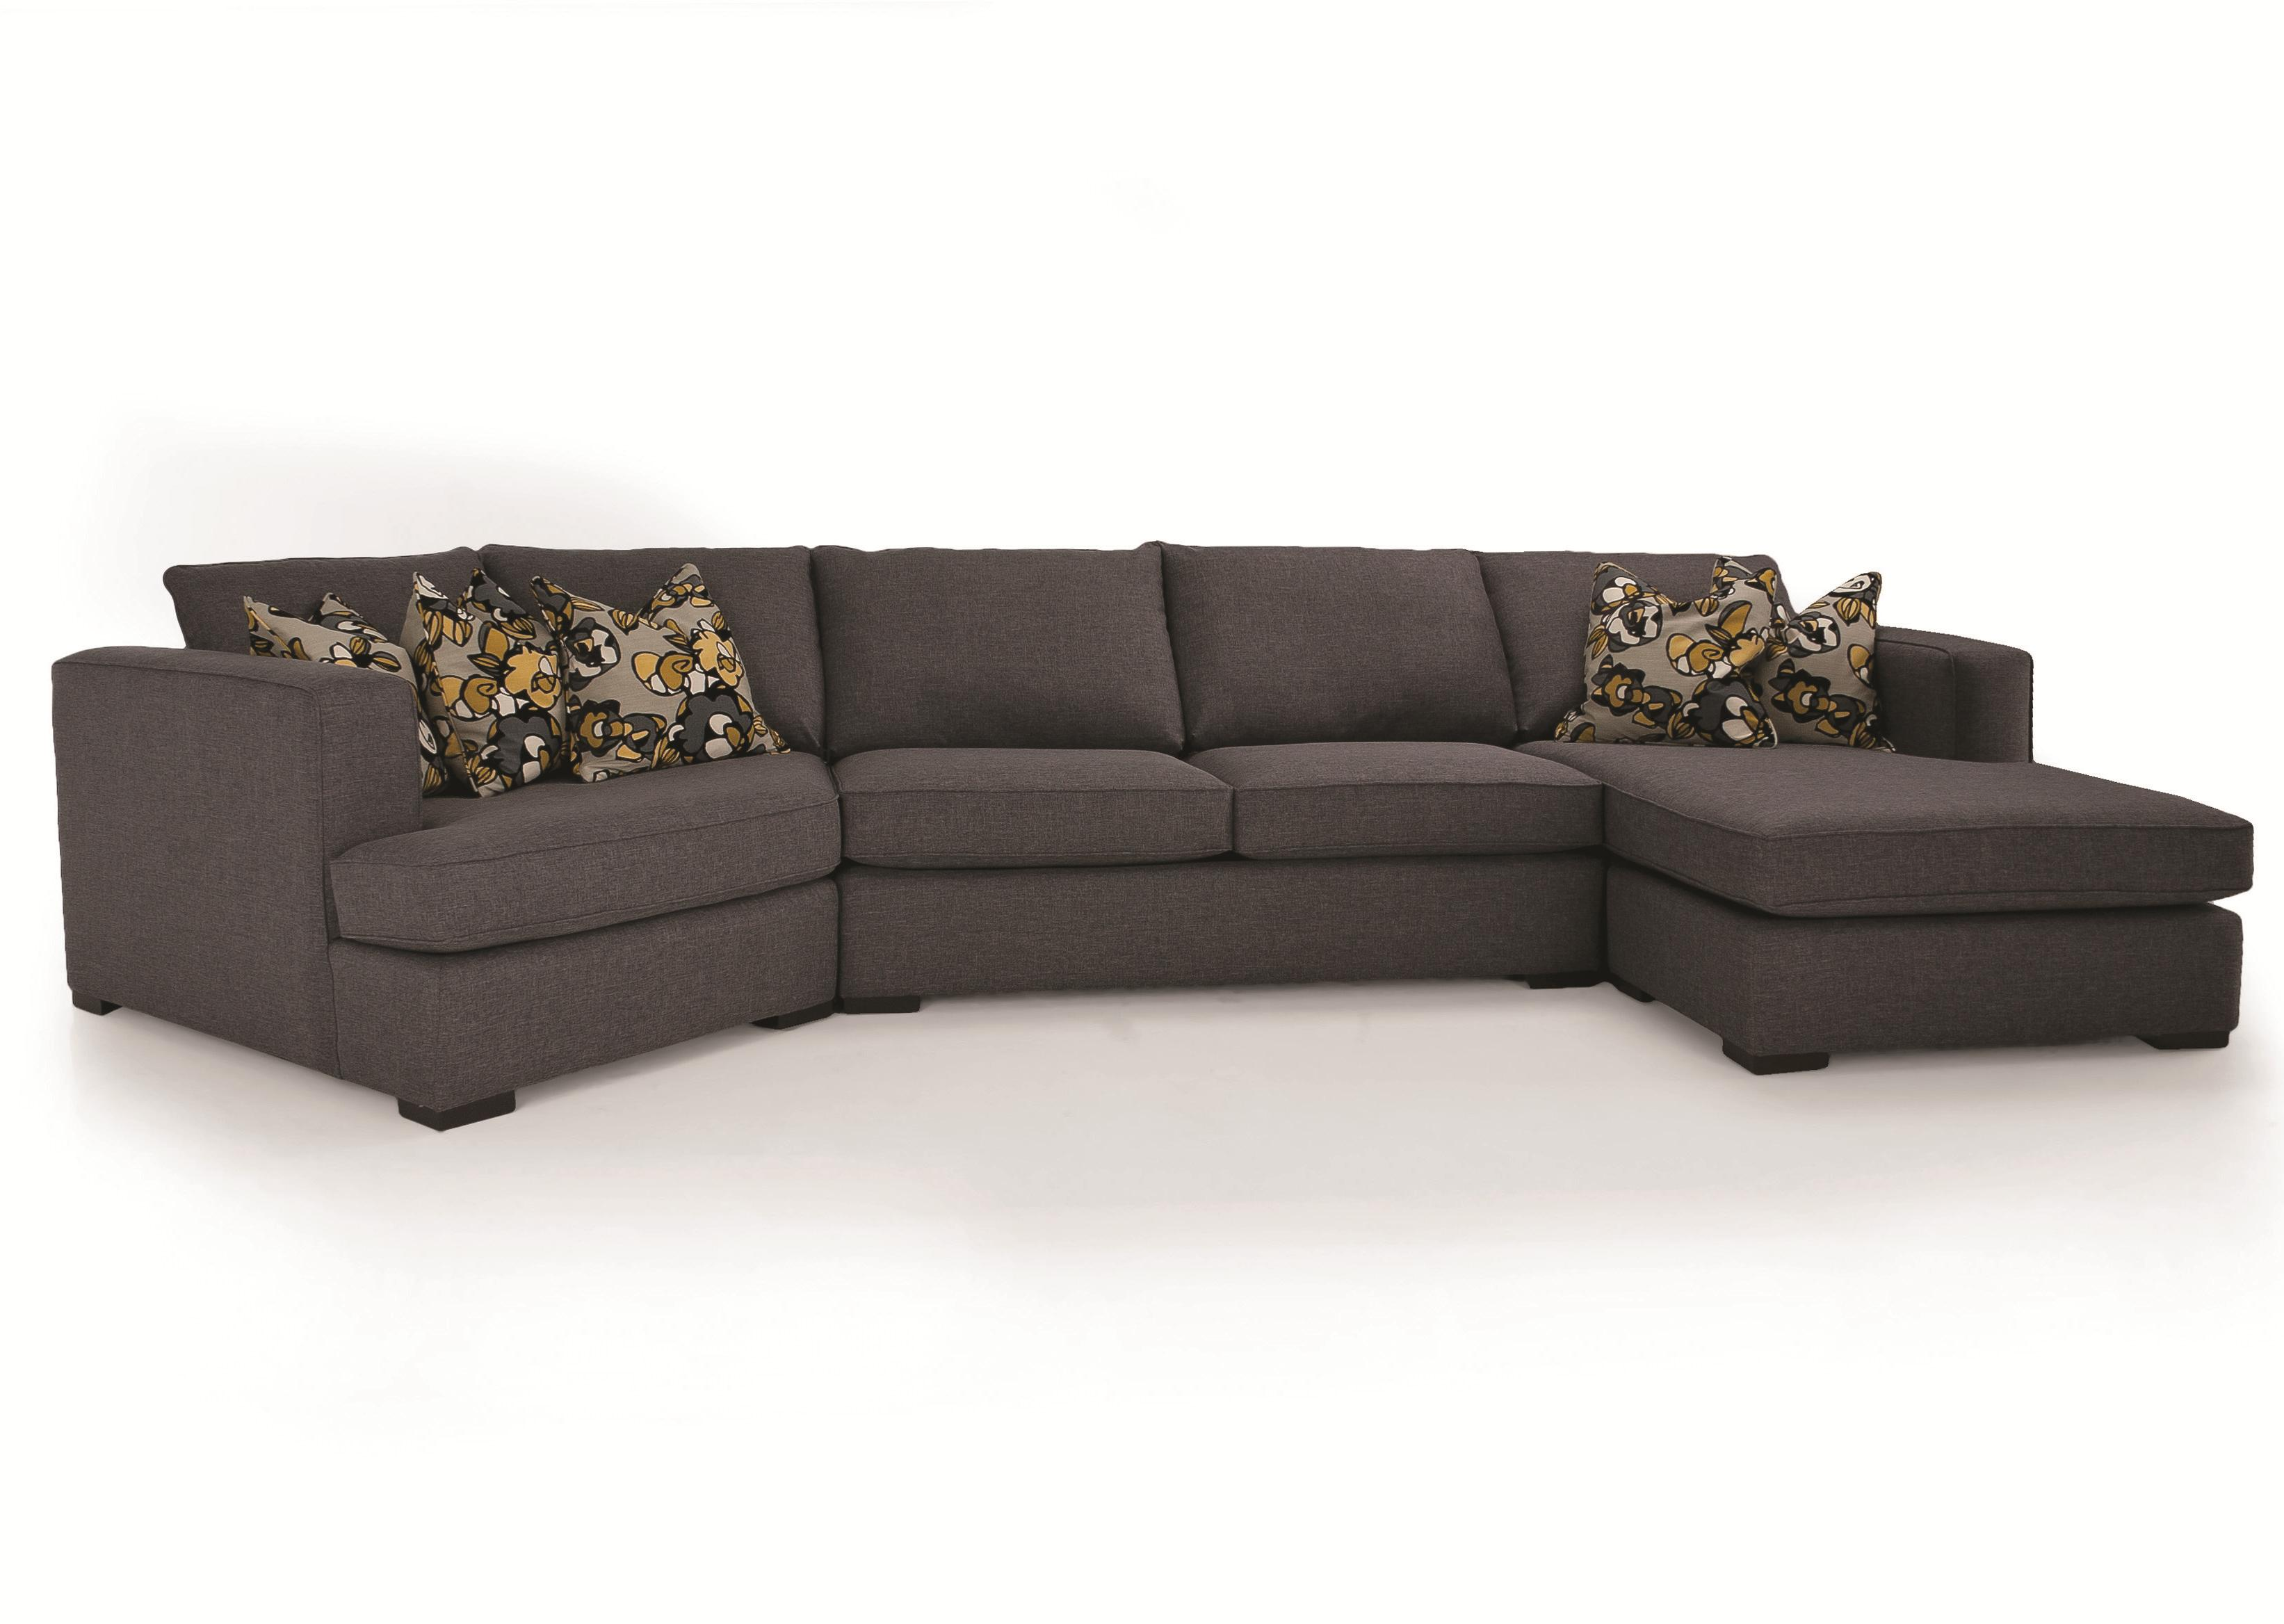 2900 3 pc. Sectional by Decor-Rest at Johnny Janosik